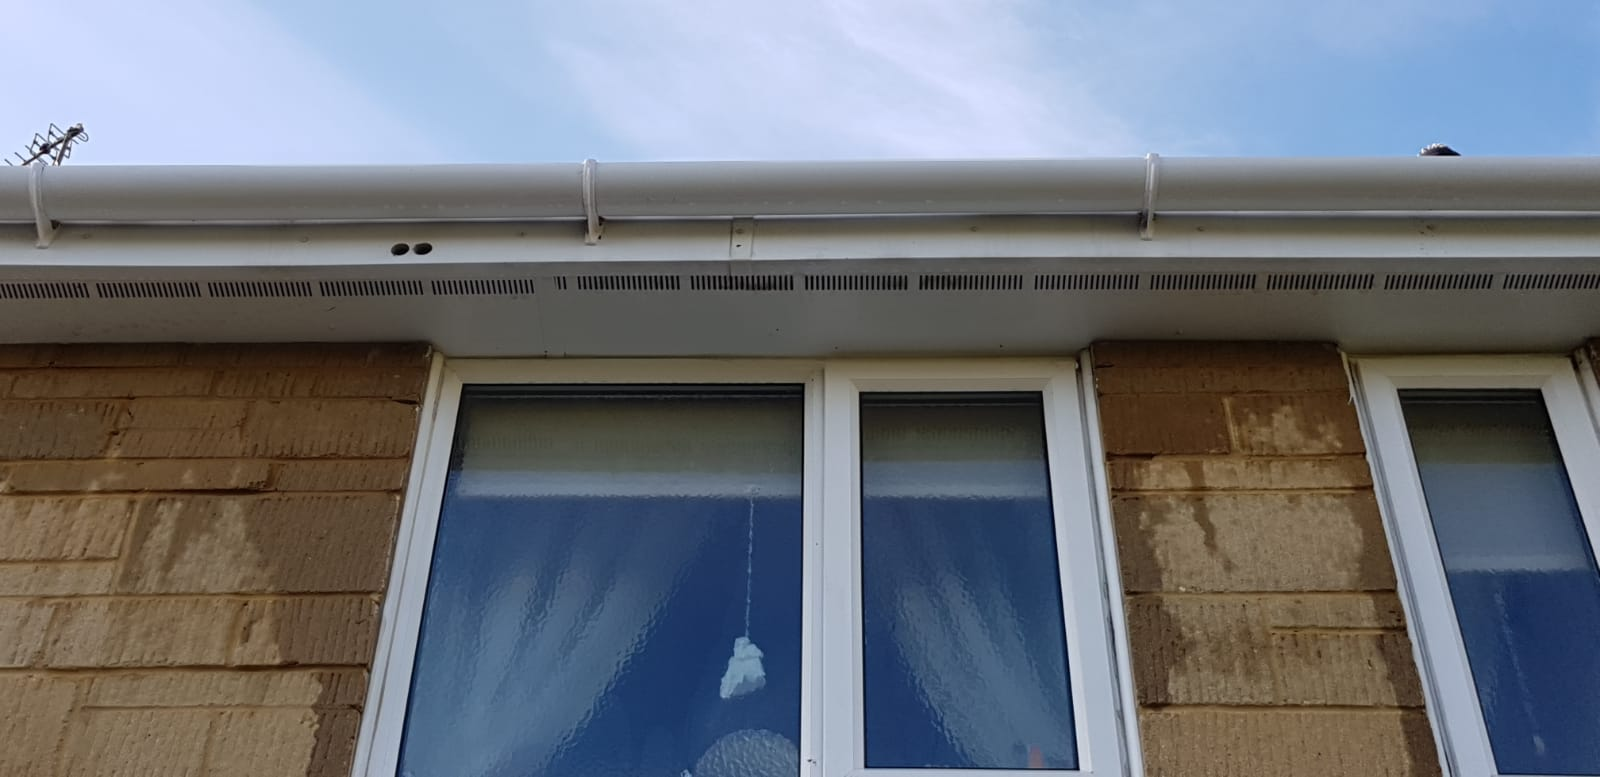 The finished outcome of gutter cleaning